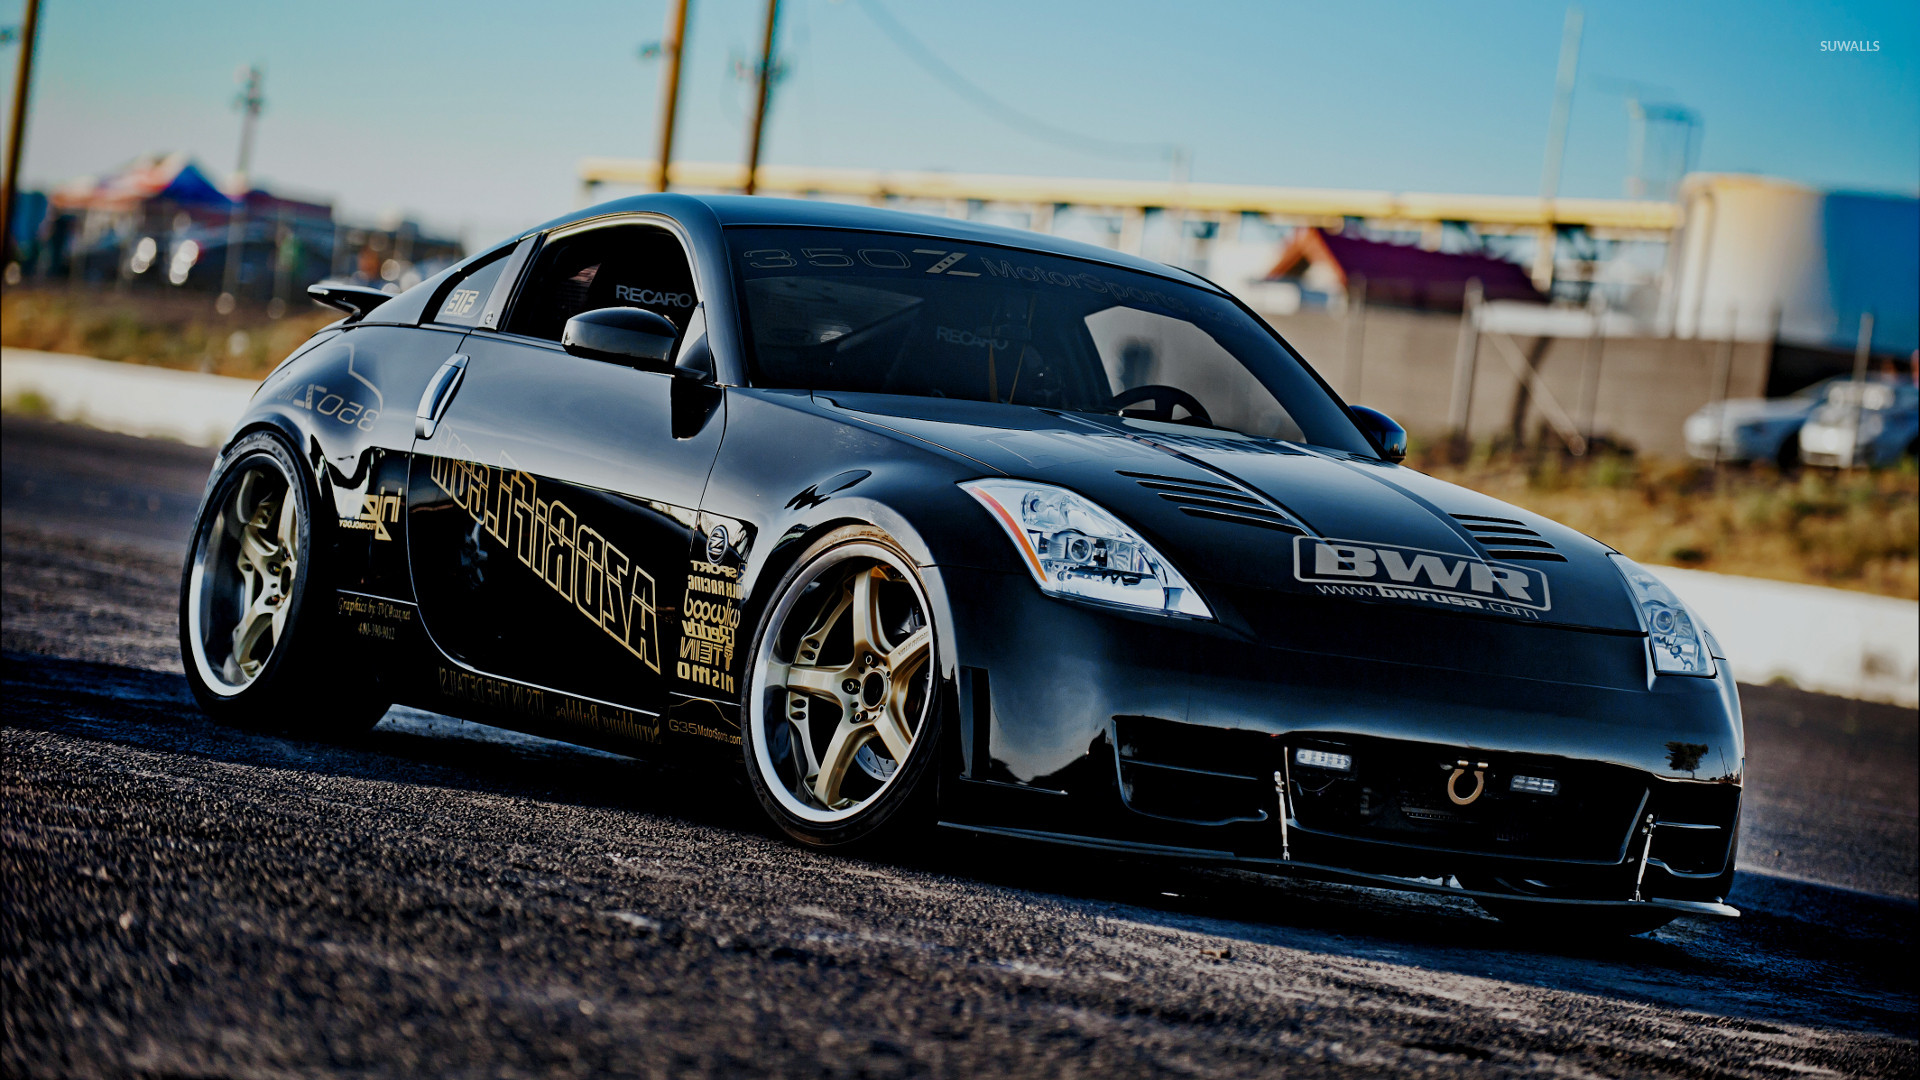 1920x1080 Front side view of a Nissan 350Z wallpaper